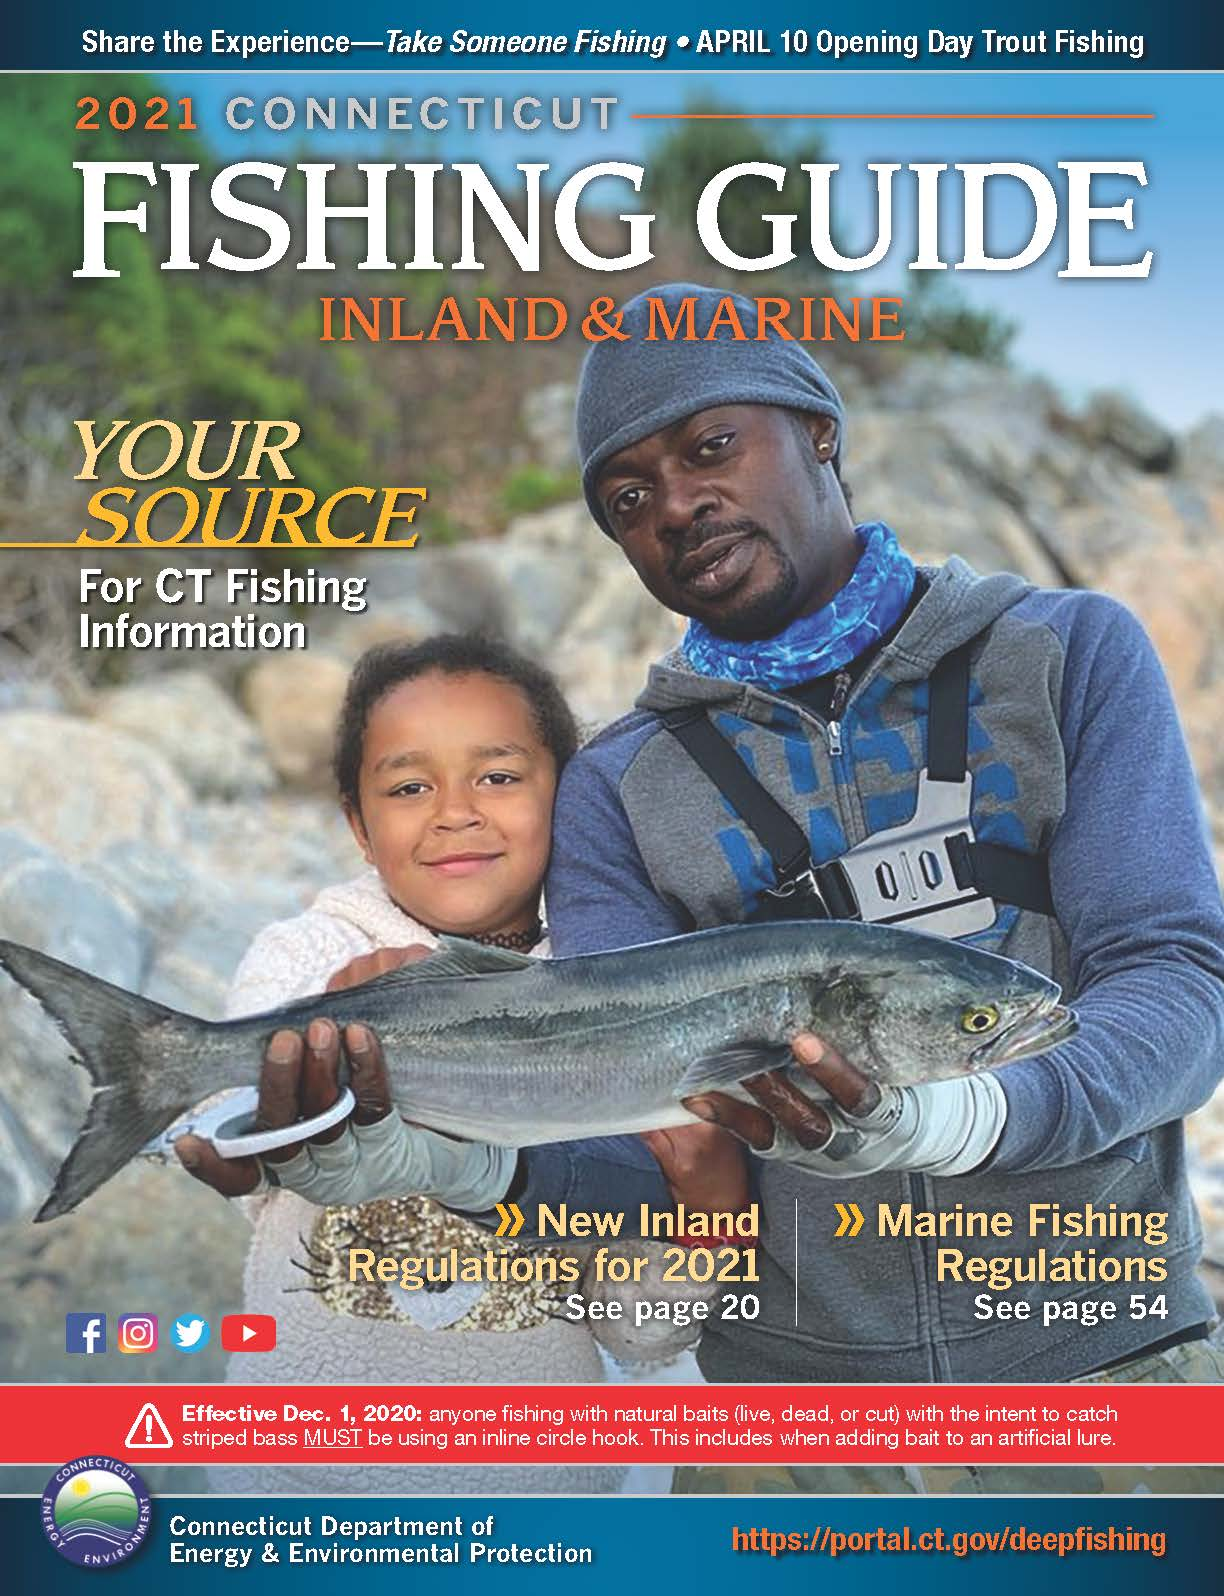 2021 fishing guide cover